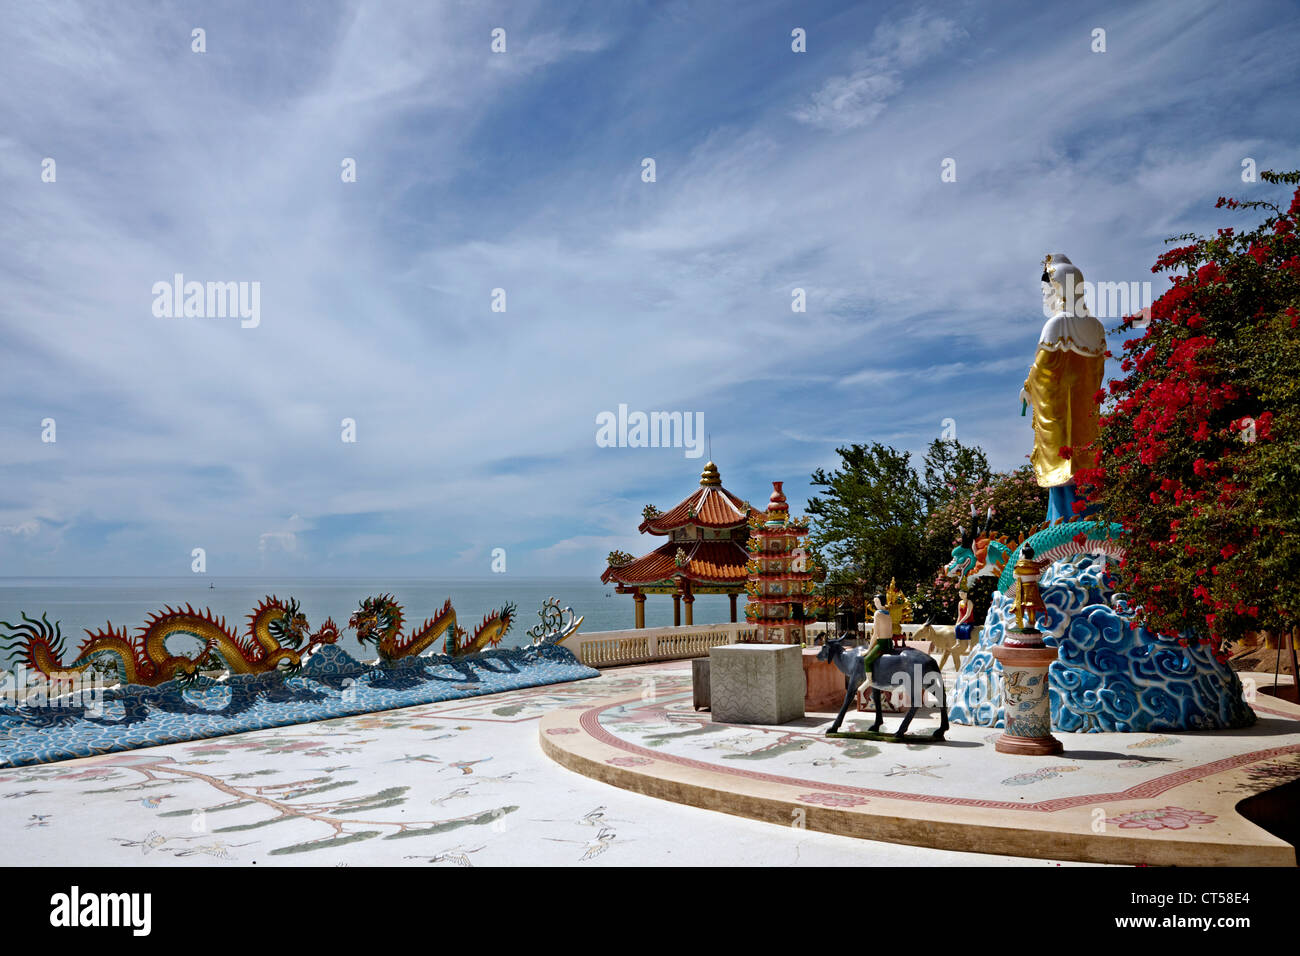 khao-takiab-buddhist-chinese-temple-over